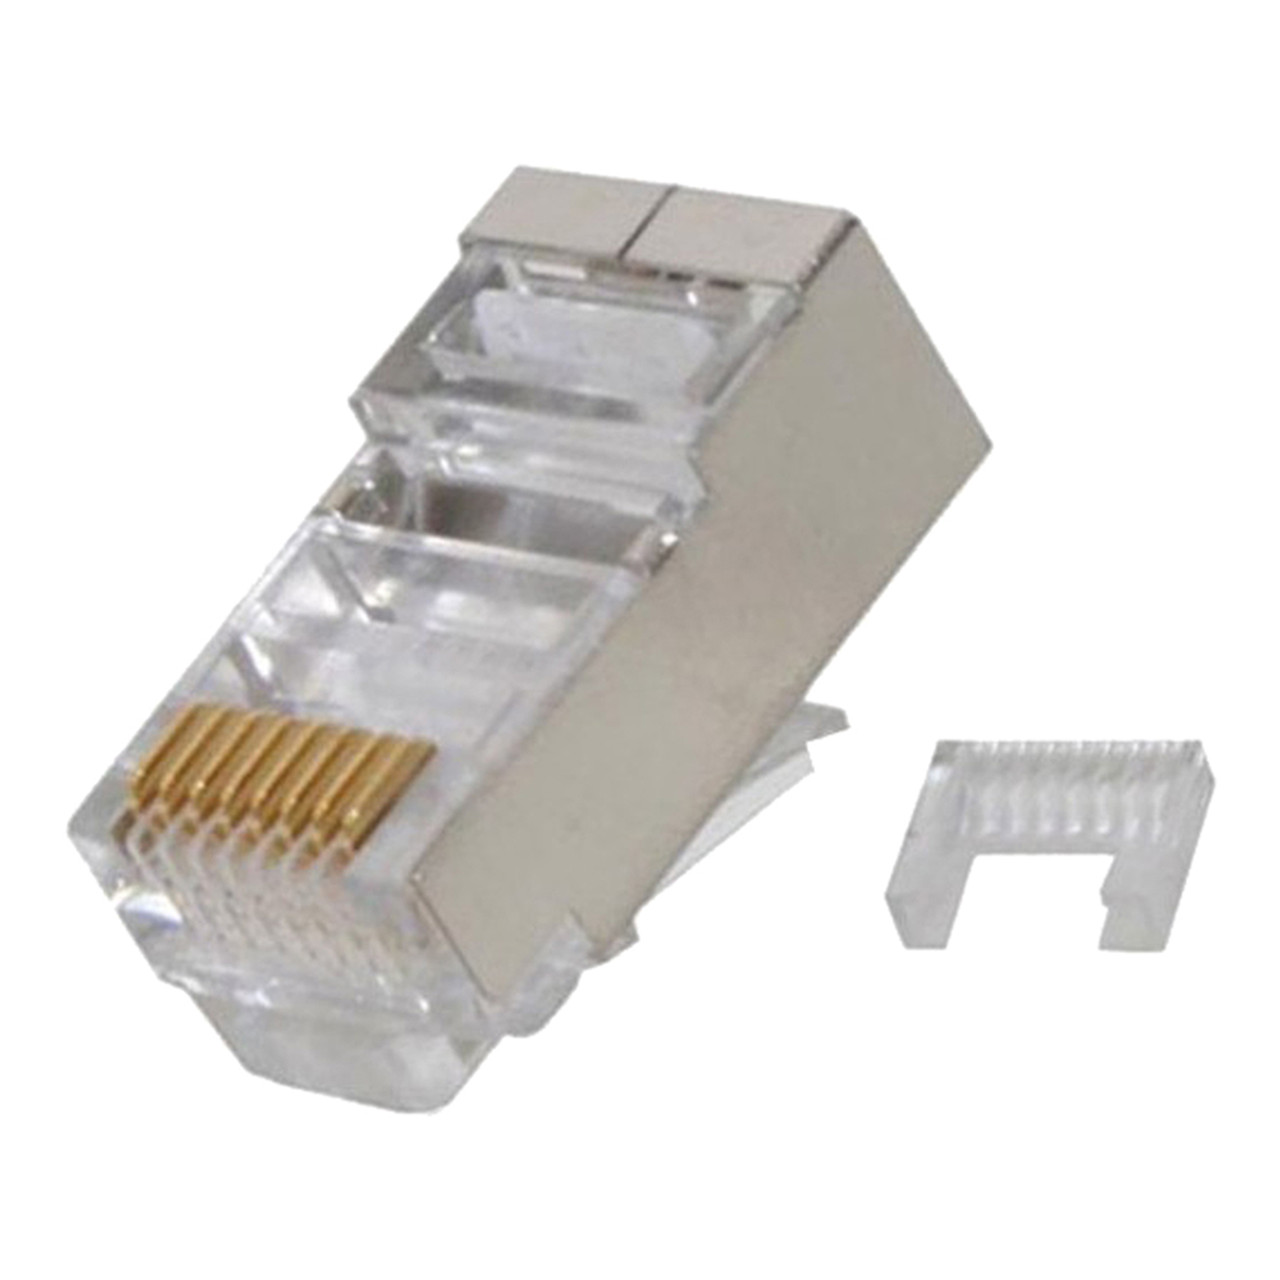 hight resolution of quest nmp 8825 modular plugs 100 pack cat6 rj45 shielded 8p8c